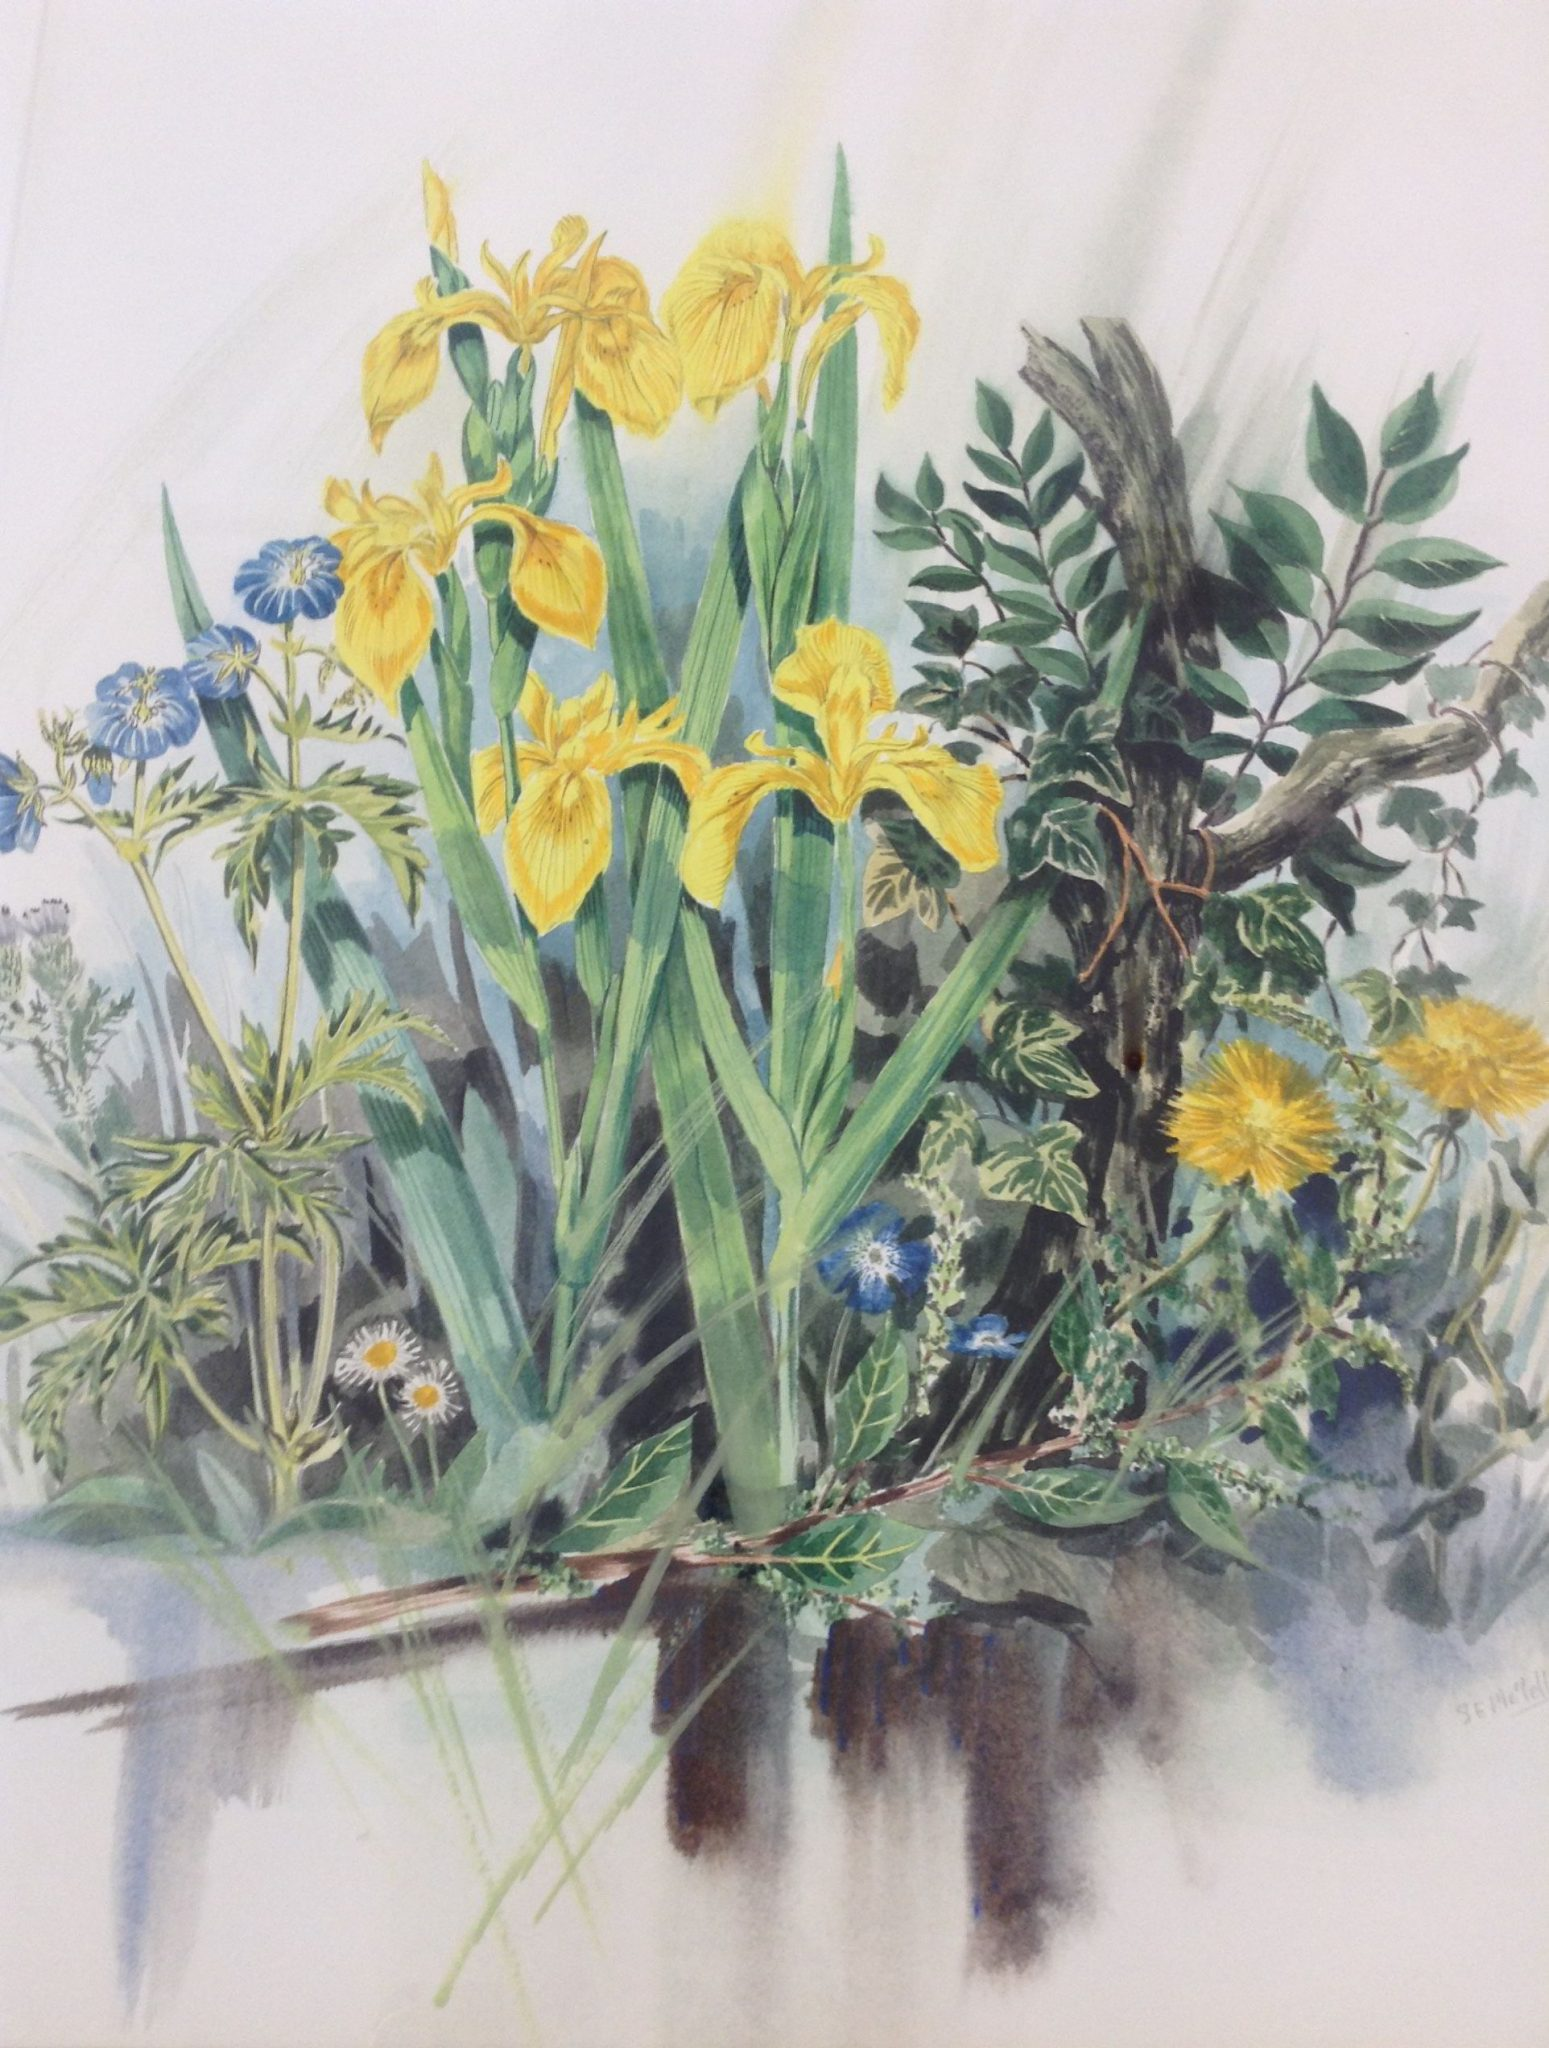 A watercolour painting of yellow iris, ivy and other wild plants